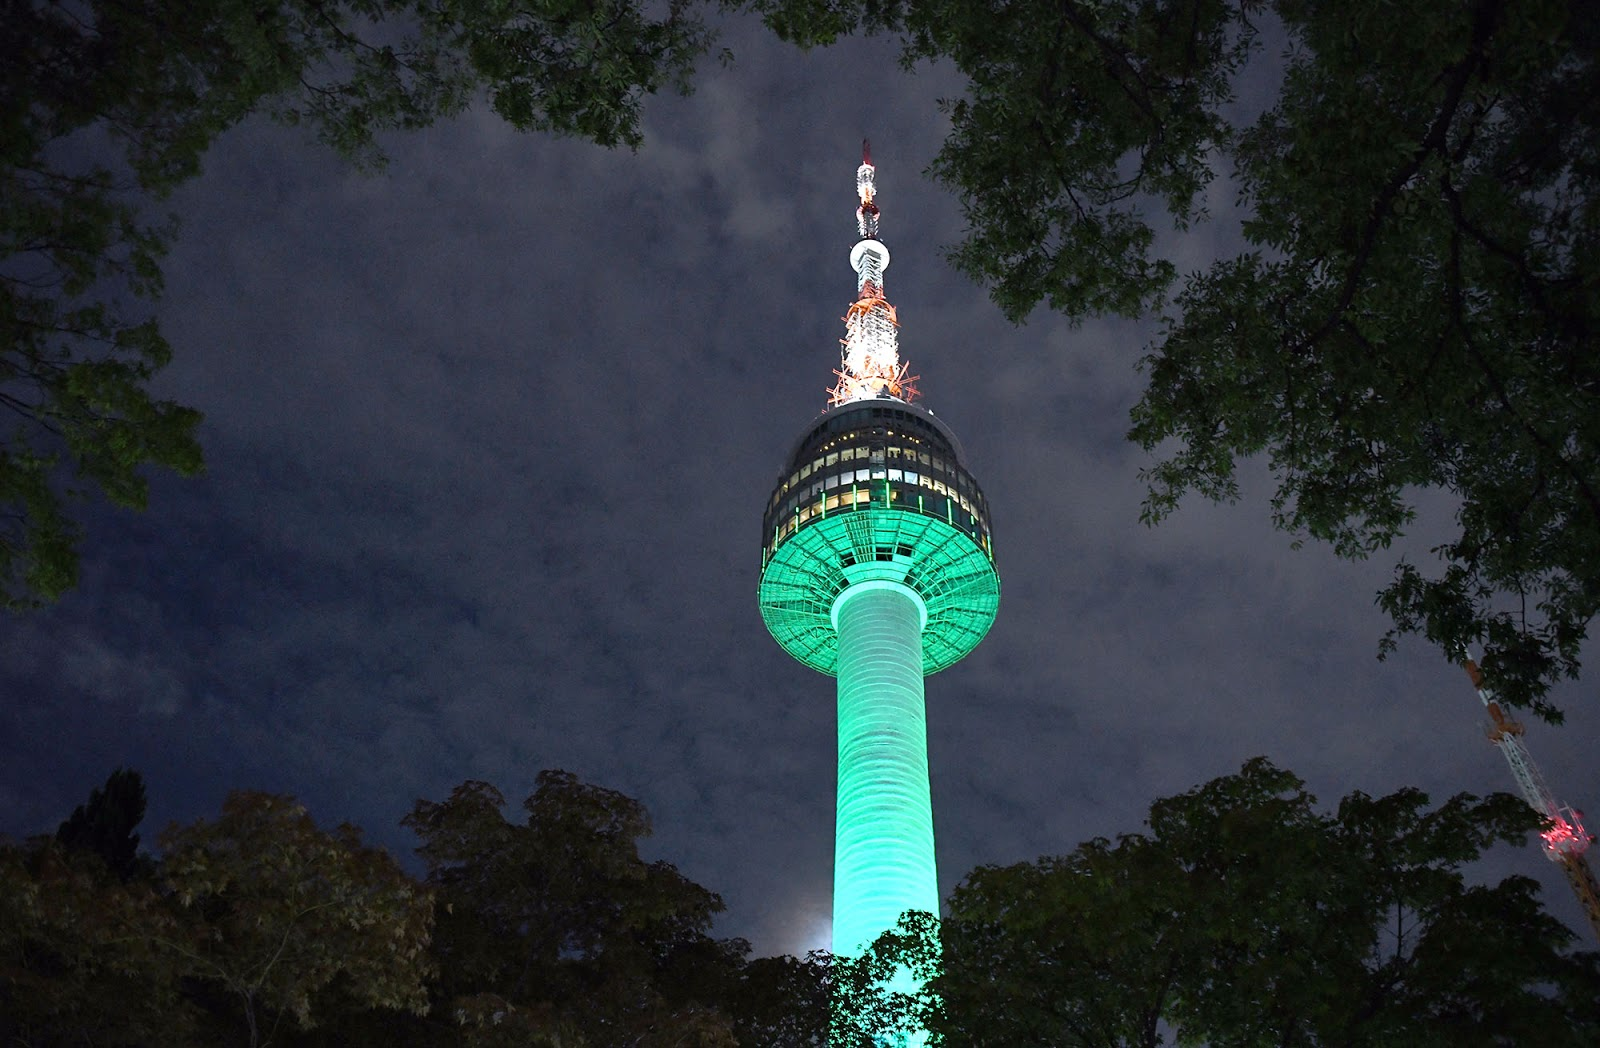 How To Go To Namsan Seoul Tower & Things To Do